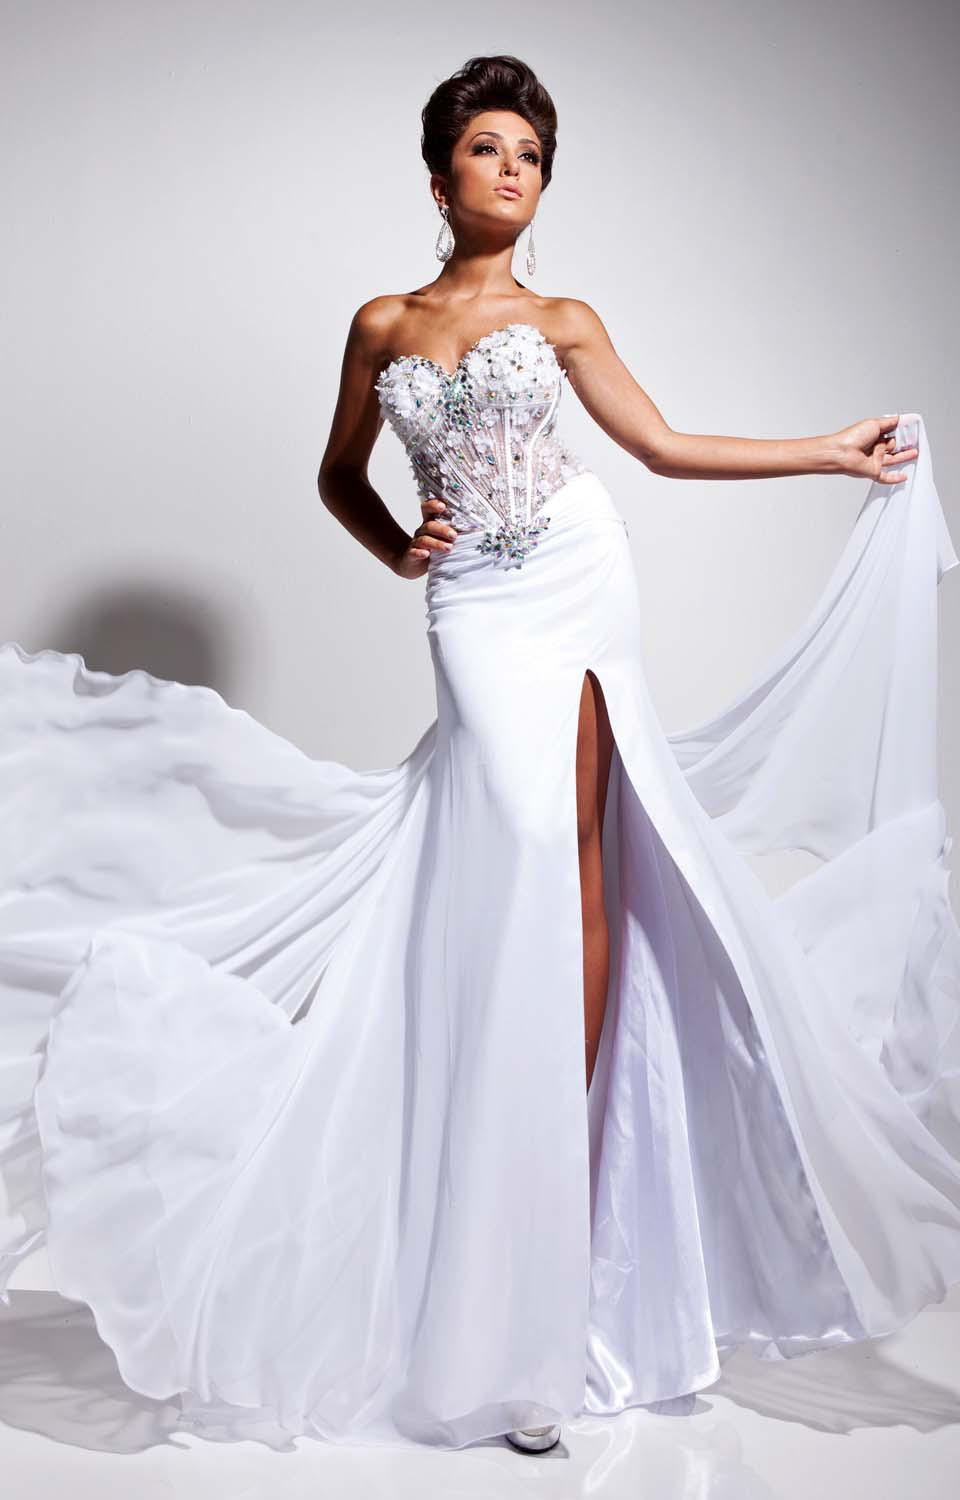 Prom Prom Dresses 2013 White Sweetheart Lace Prom Dresses ... Lace Prom Dresses 2013